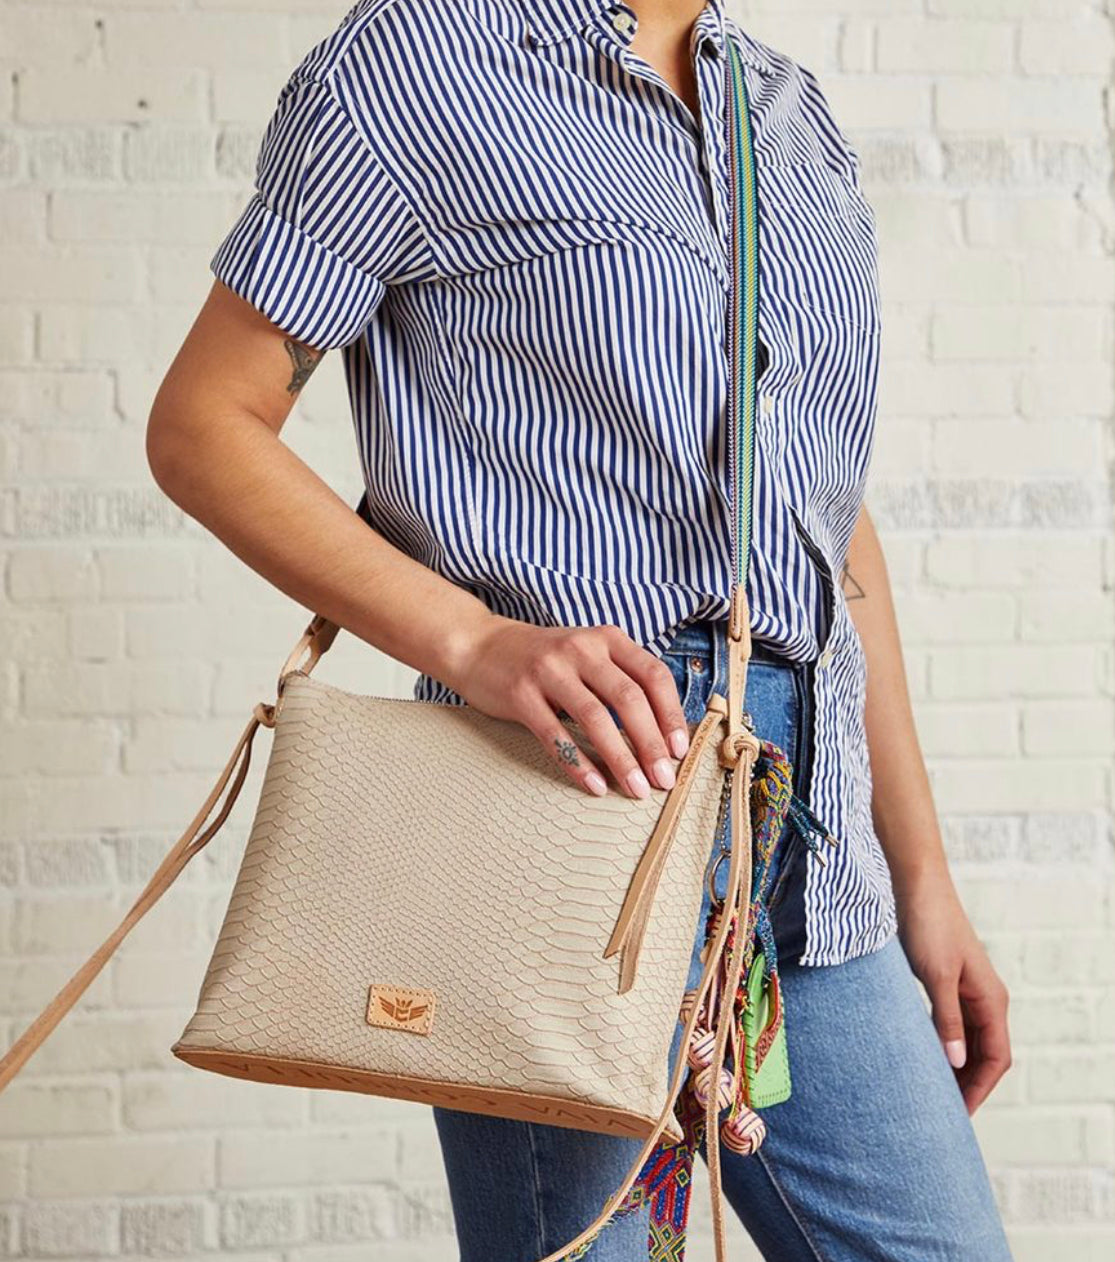 Consuela Downtown Crossbody Thunderbird